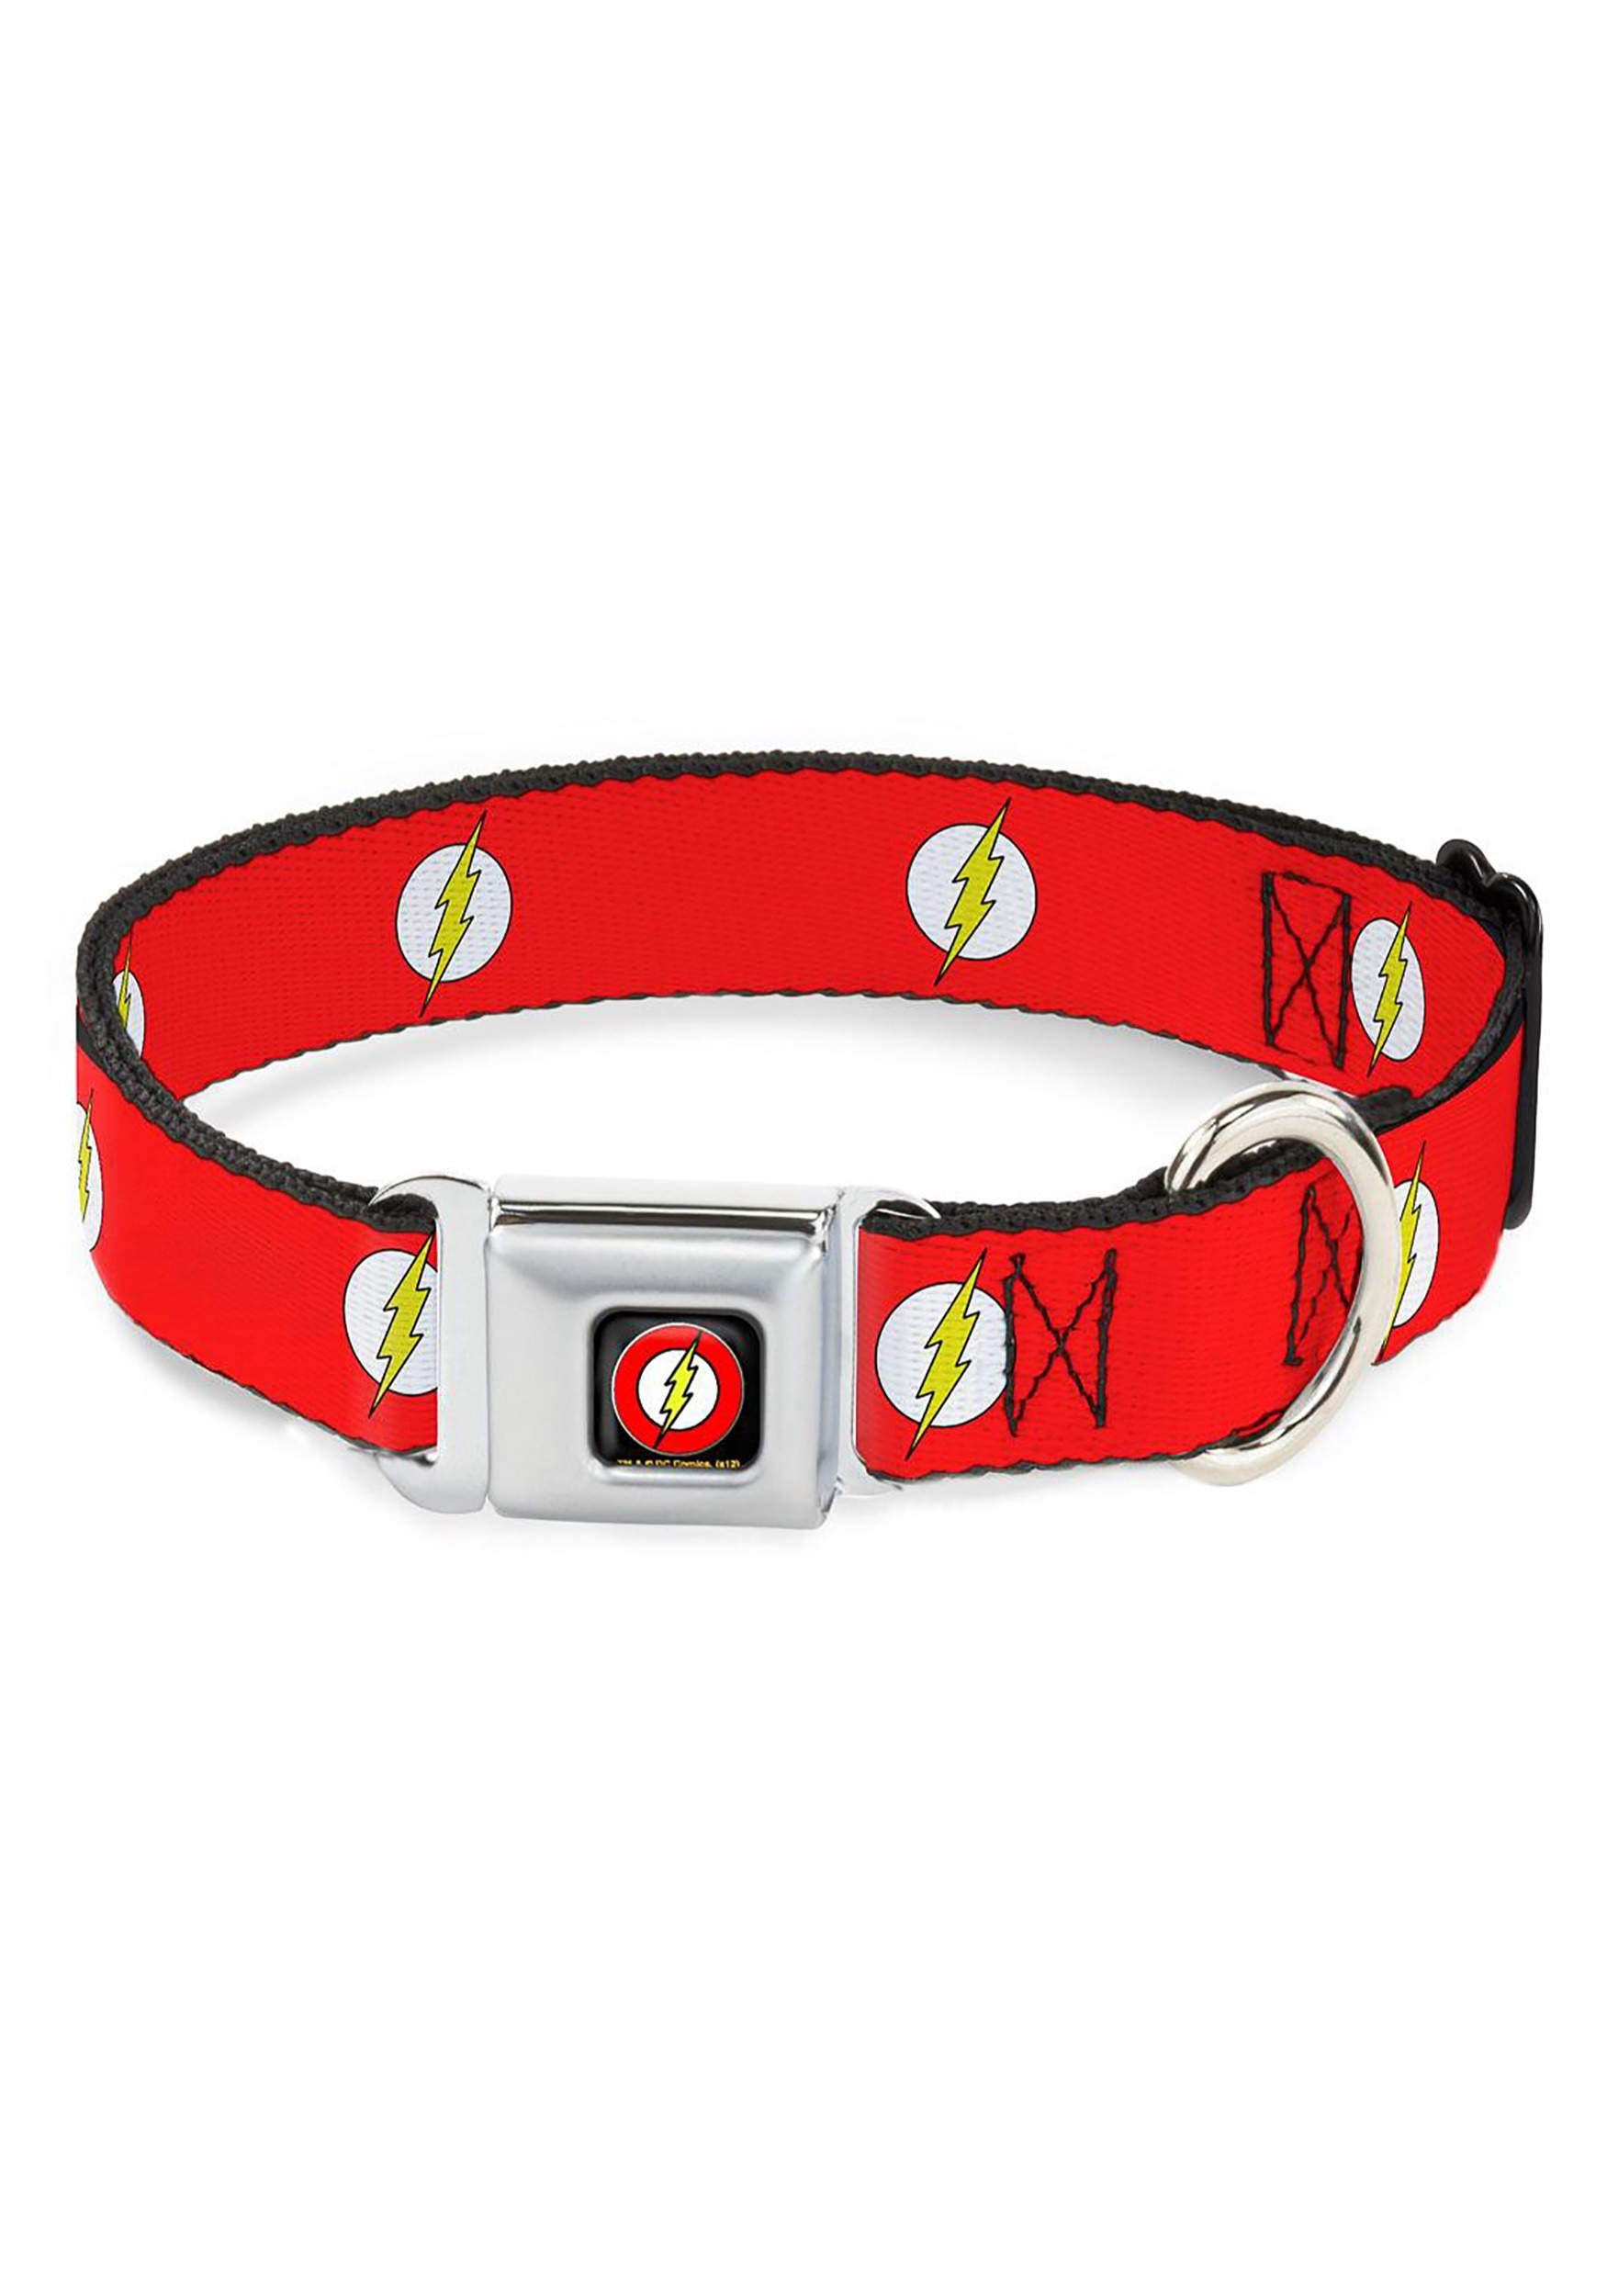 "The_Flash-_Logo_Red_Seatbelt_Buckle_Dog_Collar-_1""_Wide"